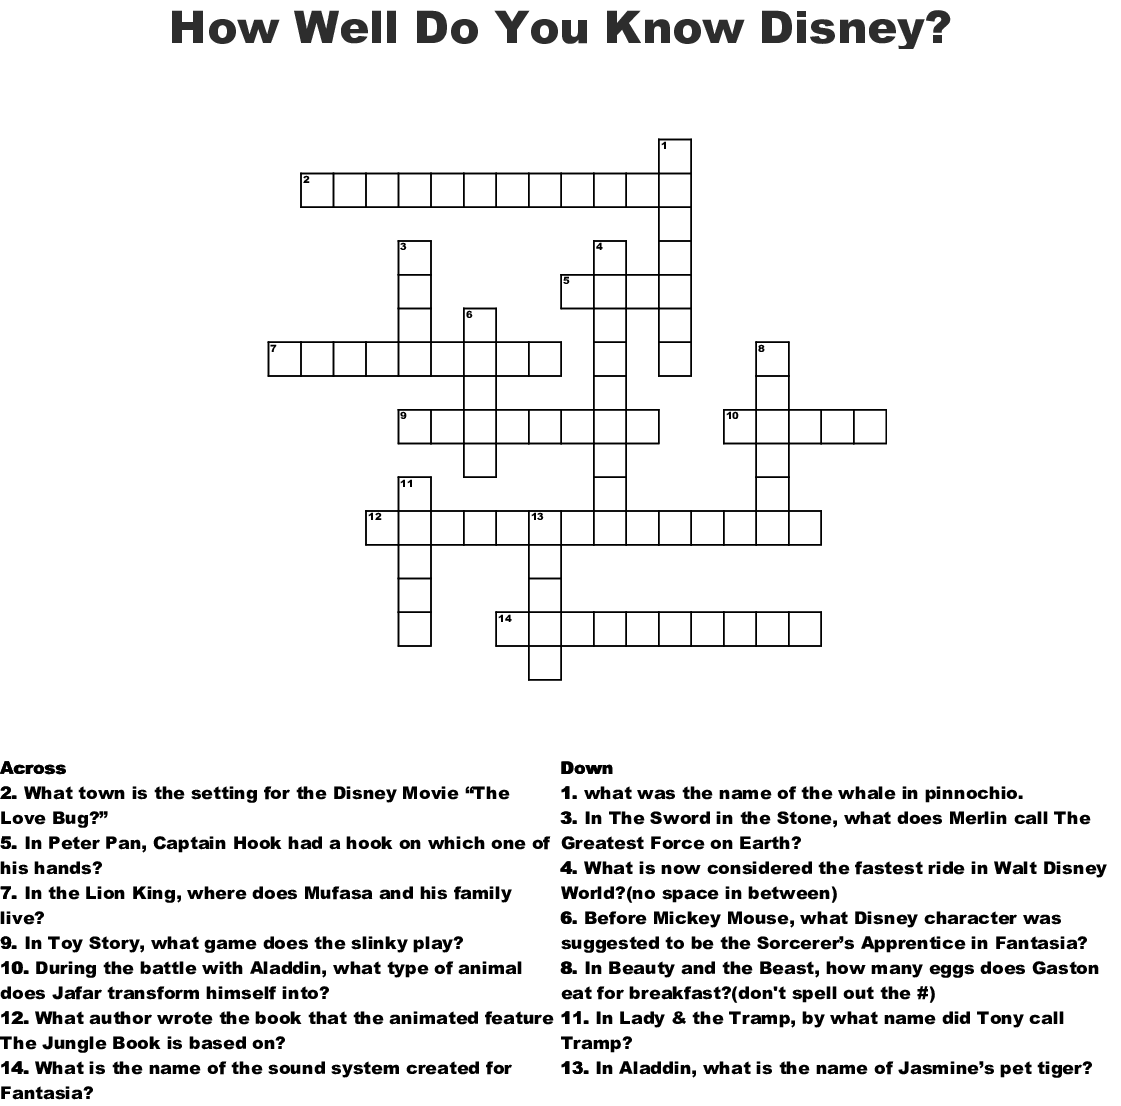 Disney Trivia Crossword - WordMint